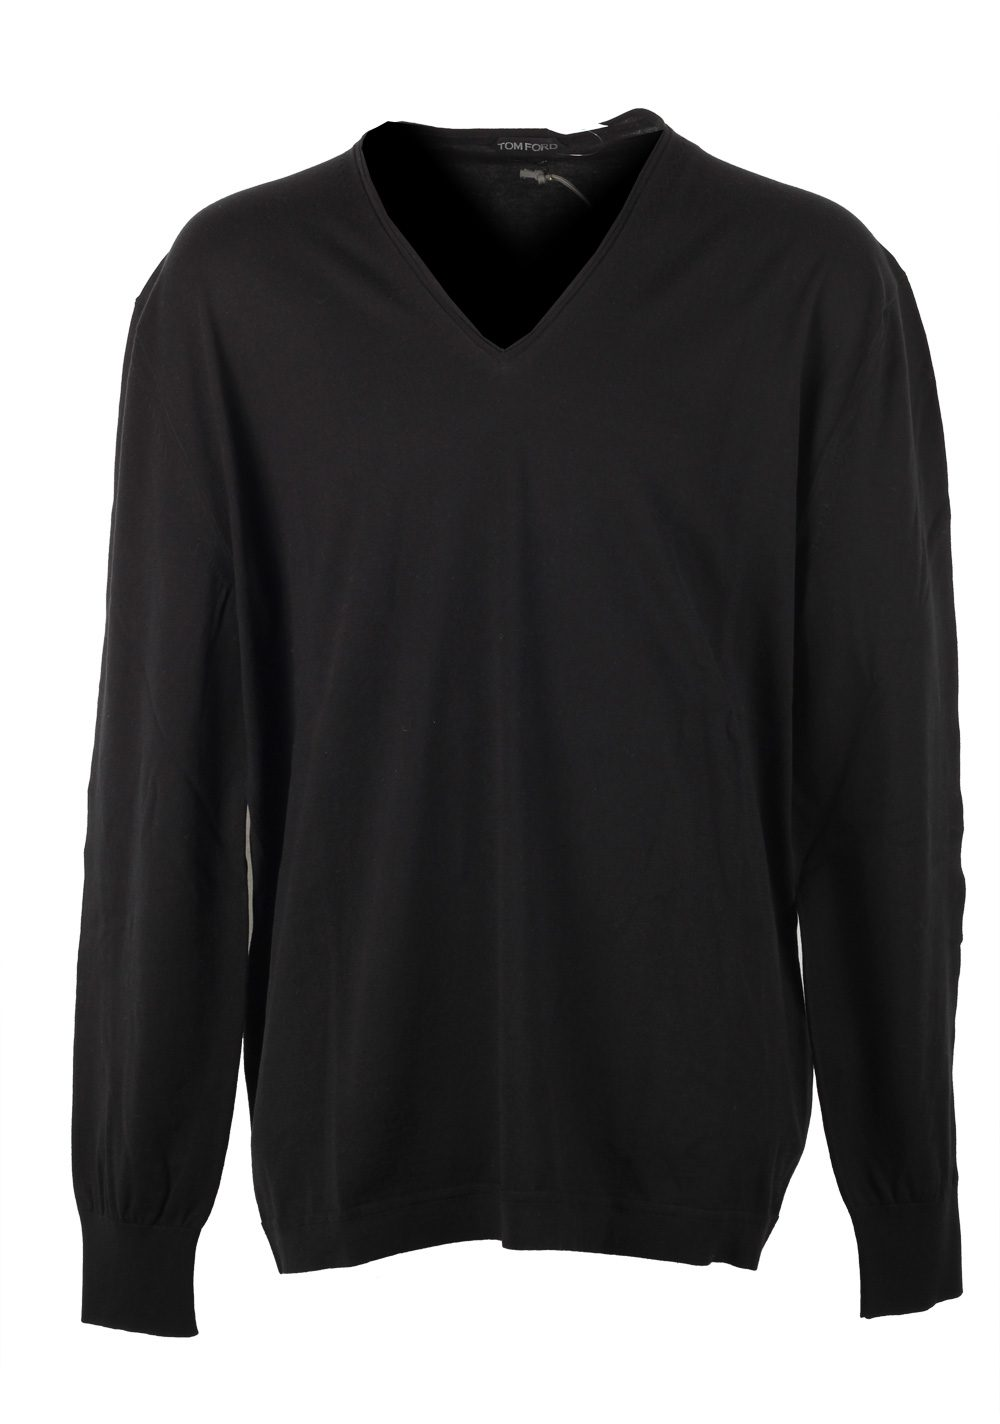 TOM FORD Black V Neck Sweater Size 64 / 54R U.S. In Cotton | Costume Limité